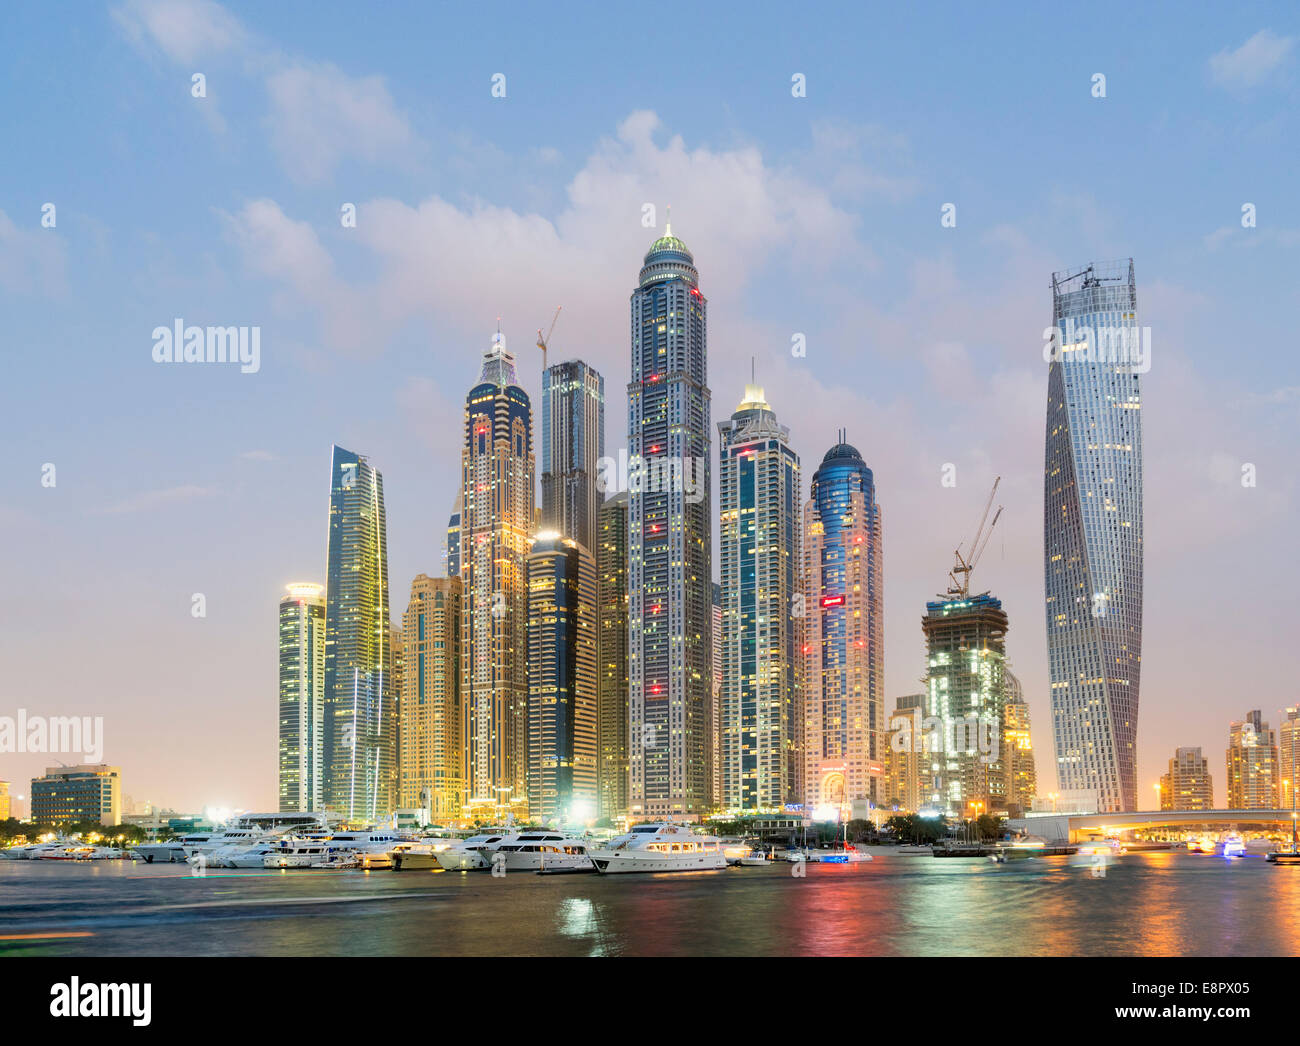 Skyline at dusk of skyscrapers in Marina district in Dubai United Arab Emirates - Stock Image